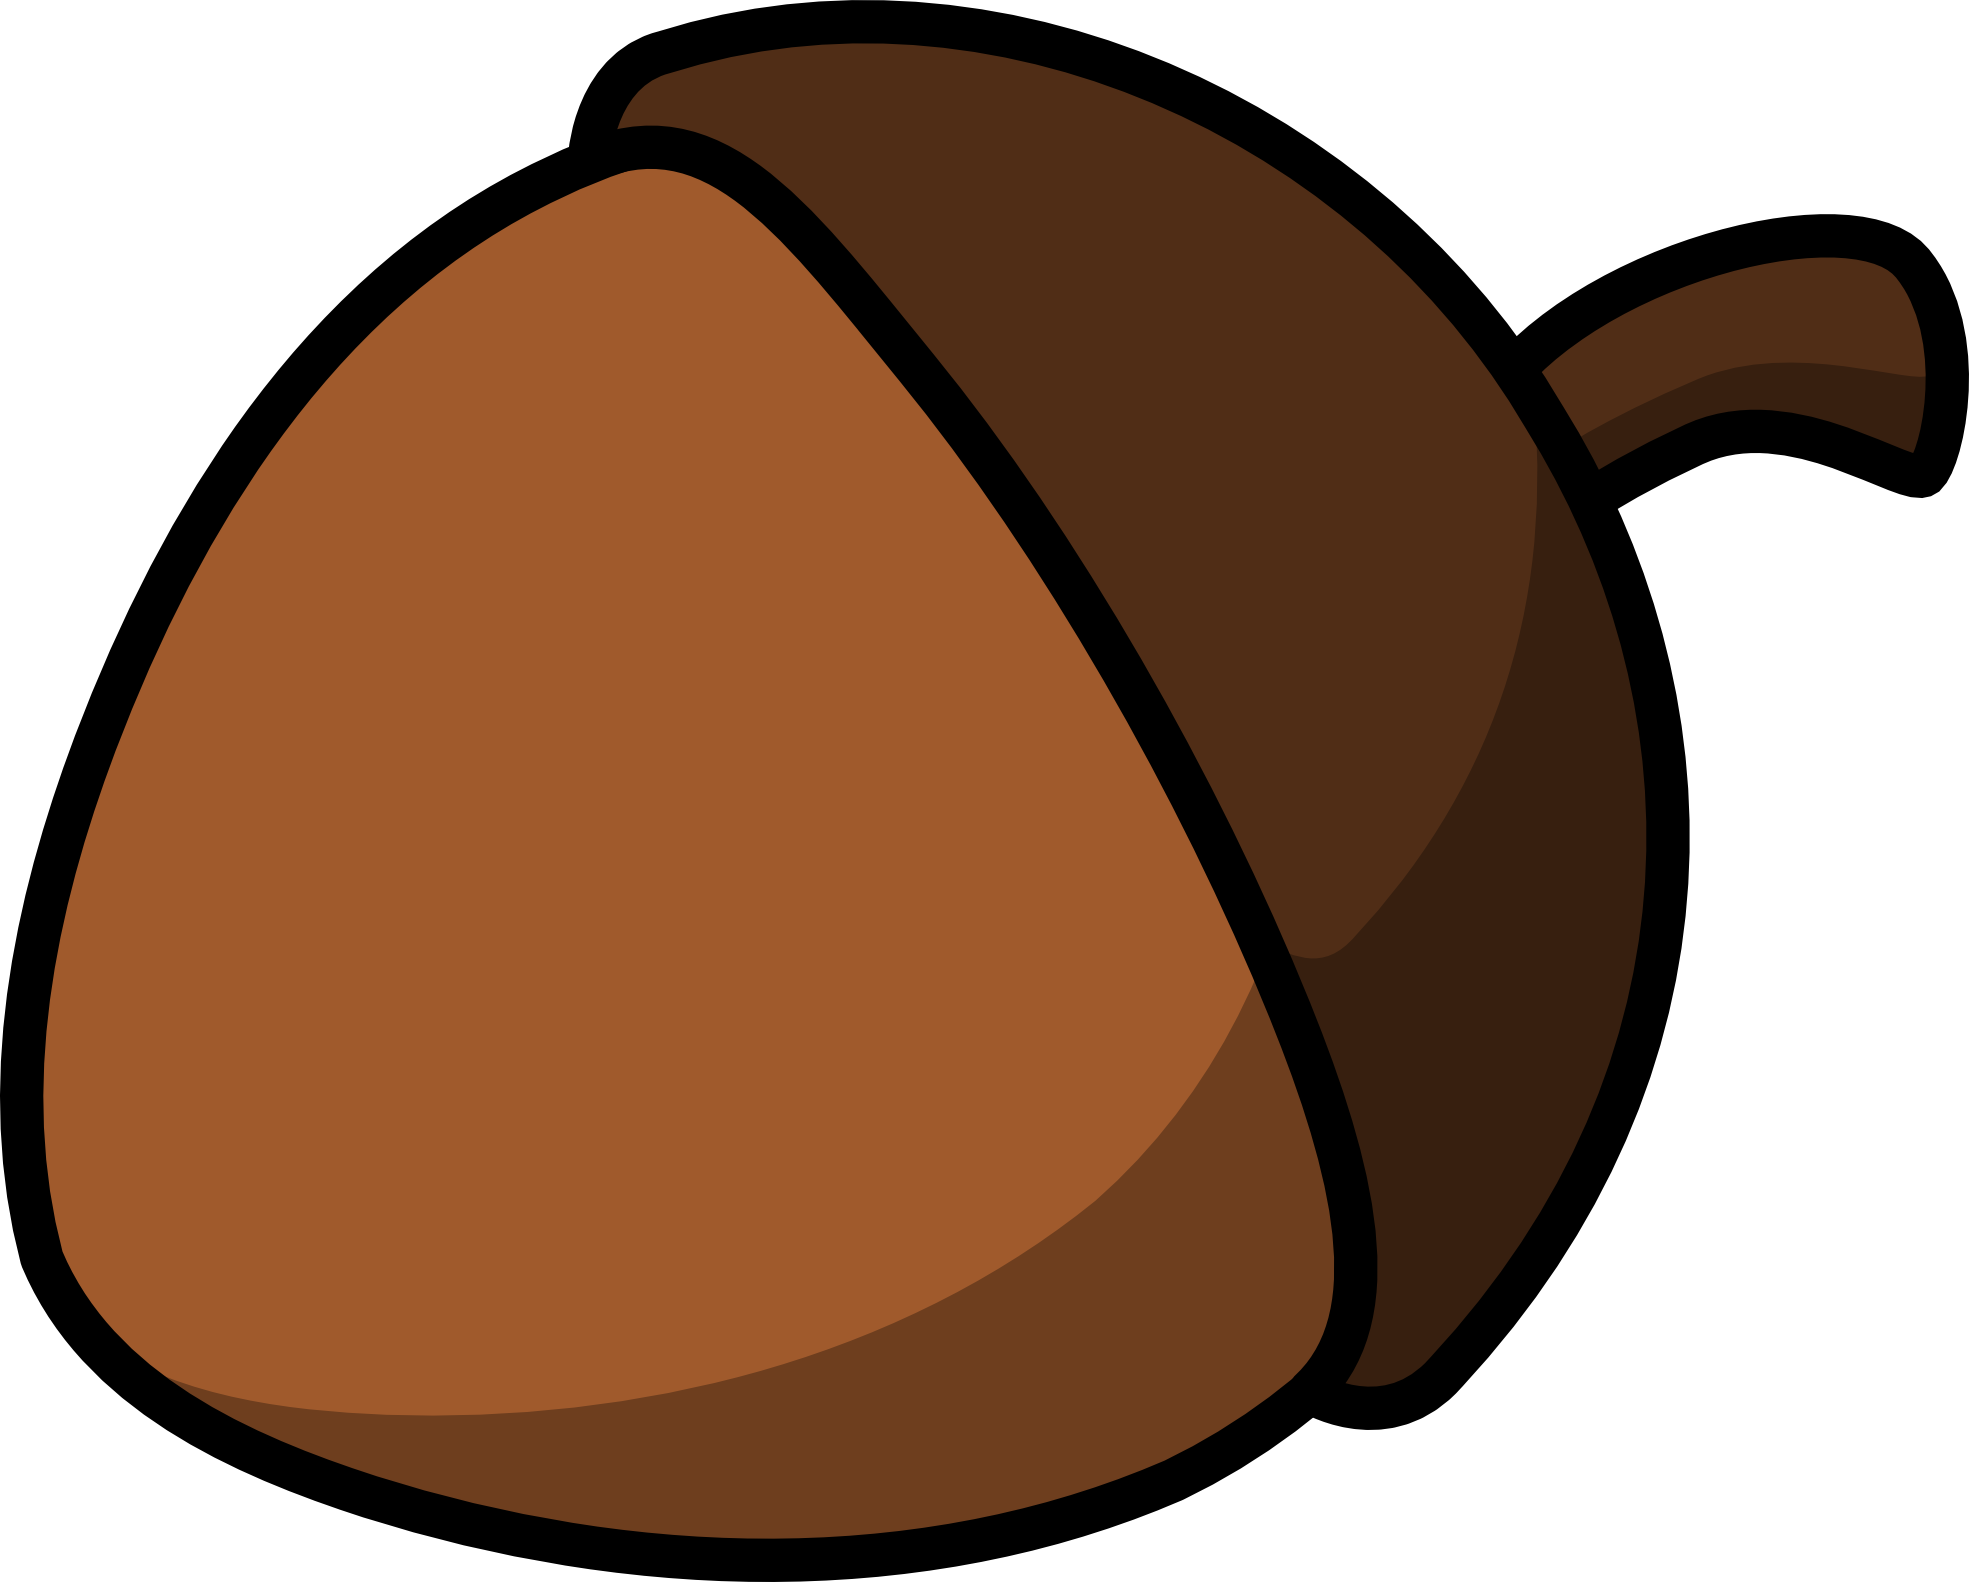 Brown clipart #13, Download drawings